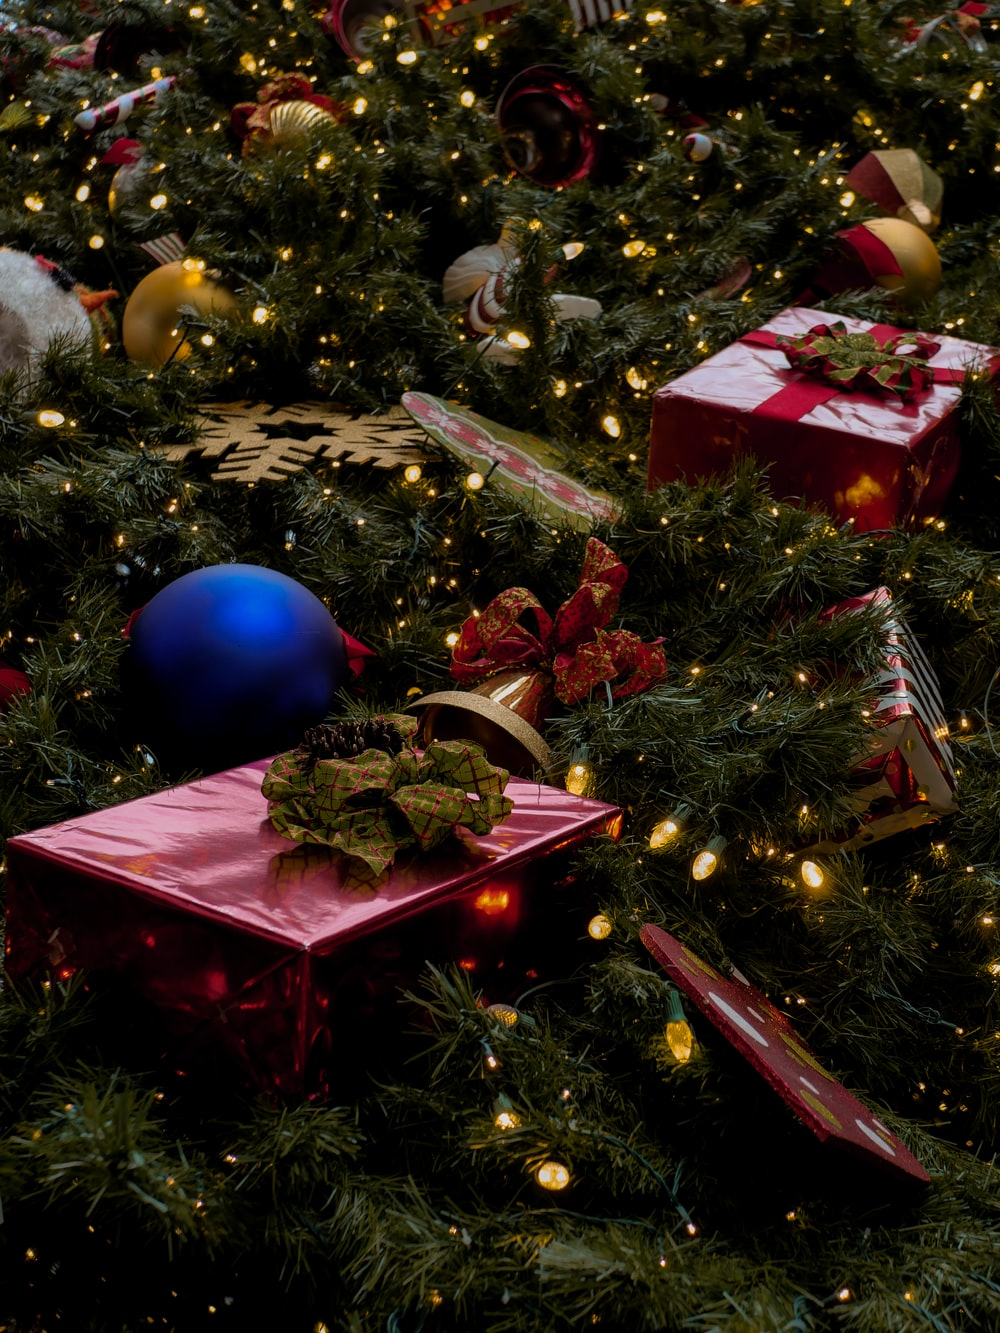 selective focus photography of baubles on Christmas tree